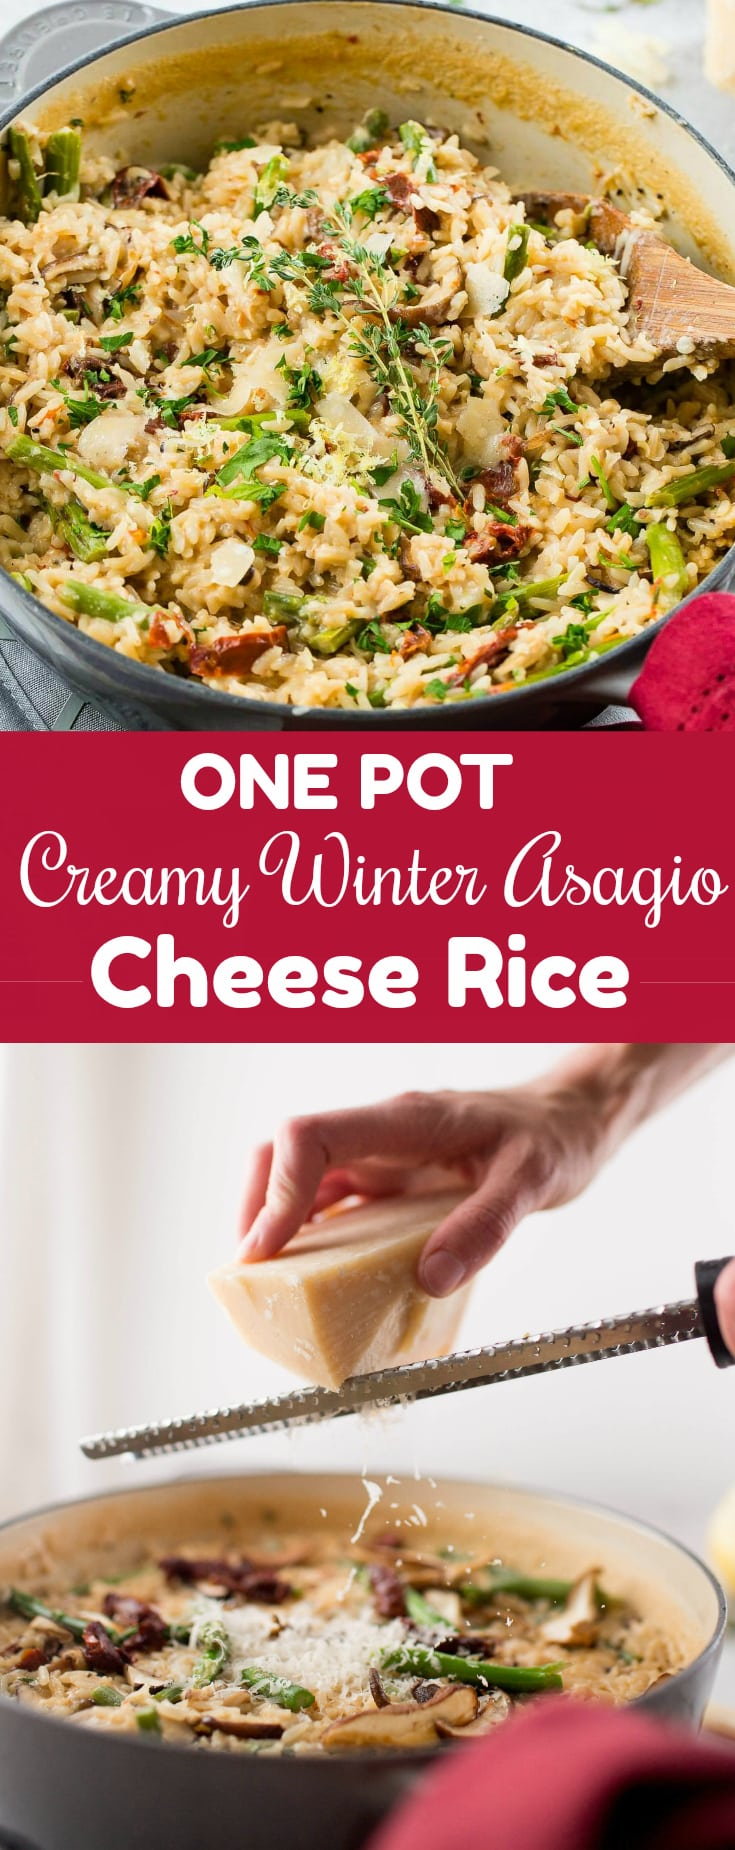 The holidays are busy enough without adding in all of the cooking and family dinners. Make this one pot creamy winter asiago cheese rice with asparagus!